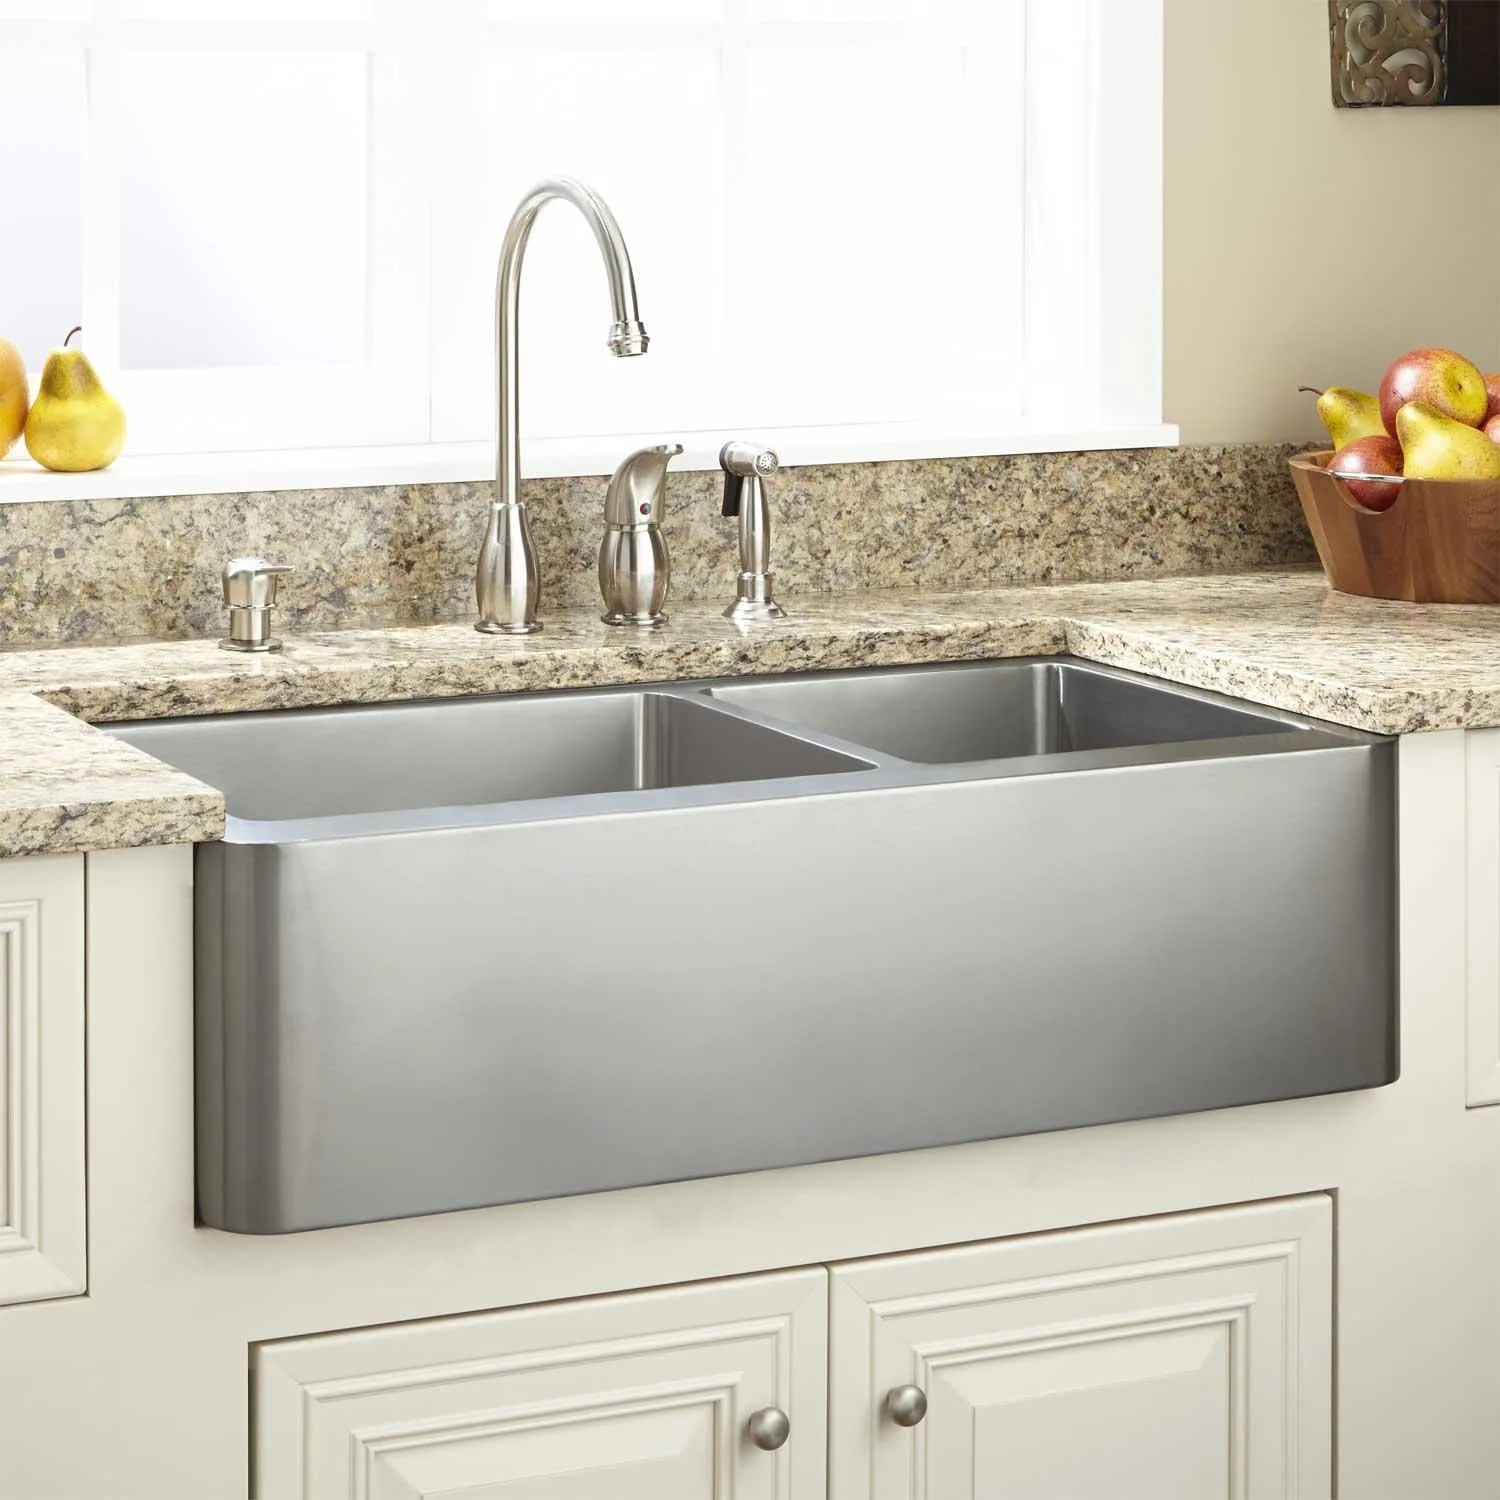 27 Hazelton Stainless Steel Farmhouse Sink Kitchen